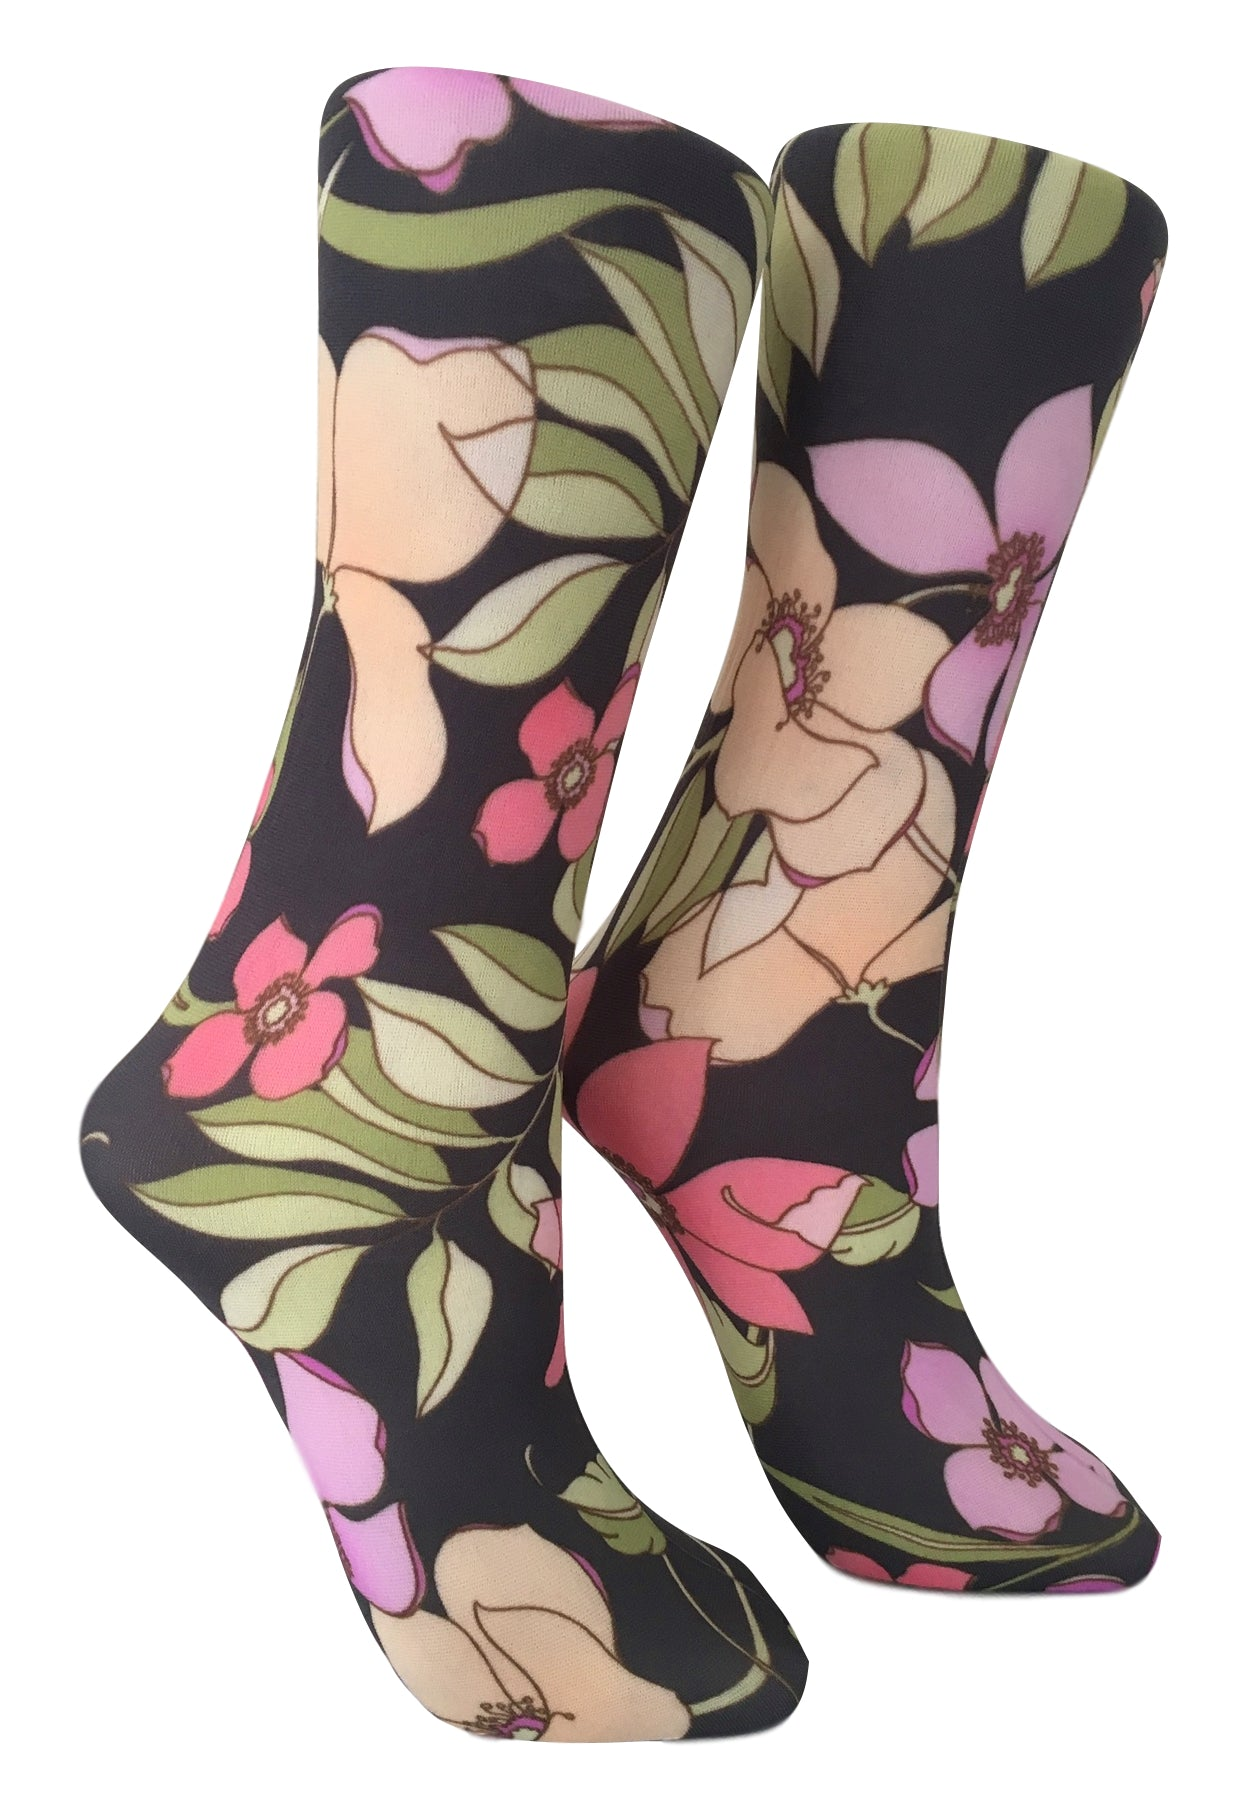 Soxtrot Knee High - Embraceable